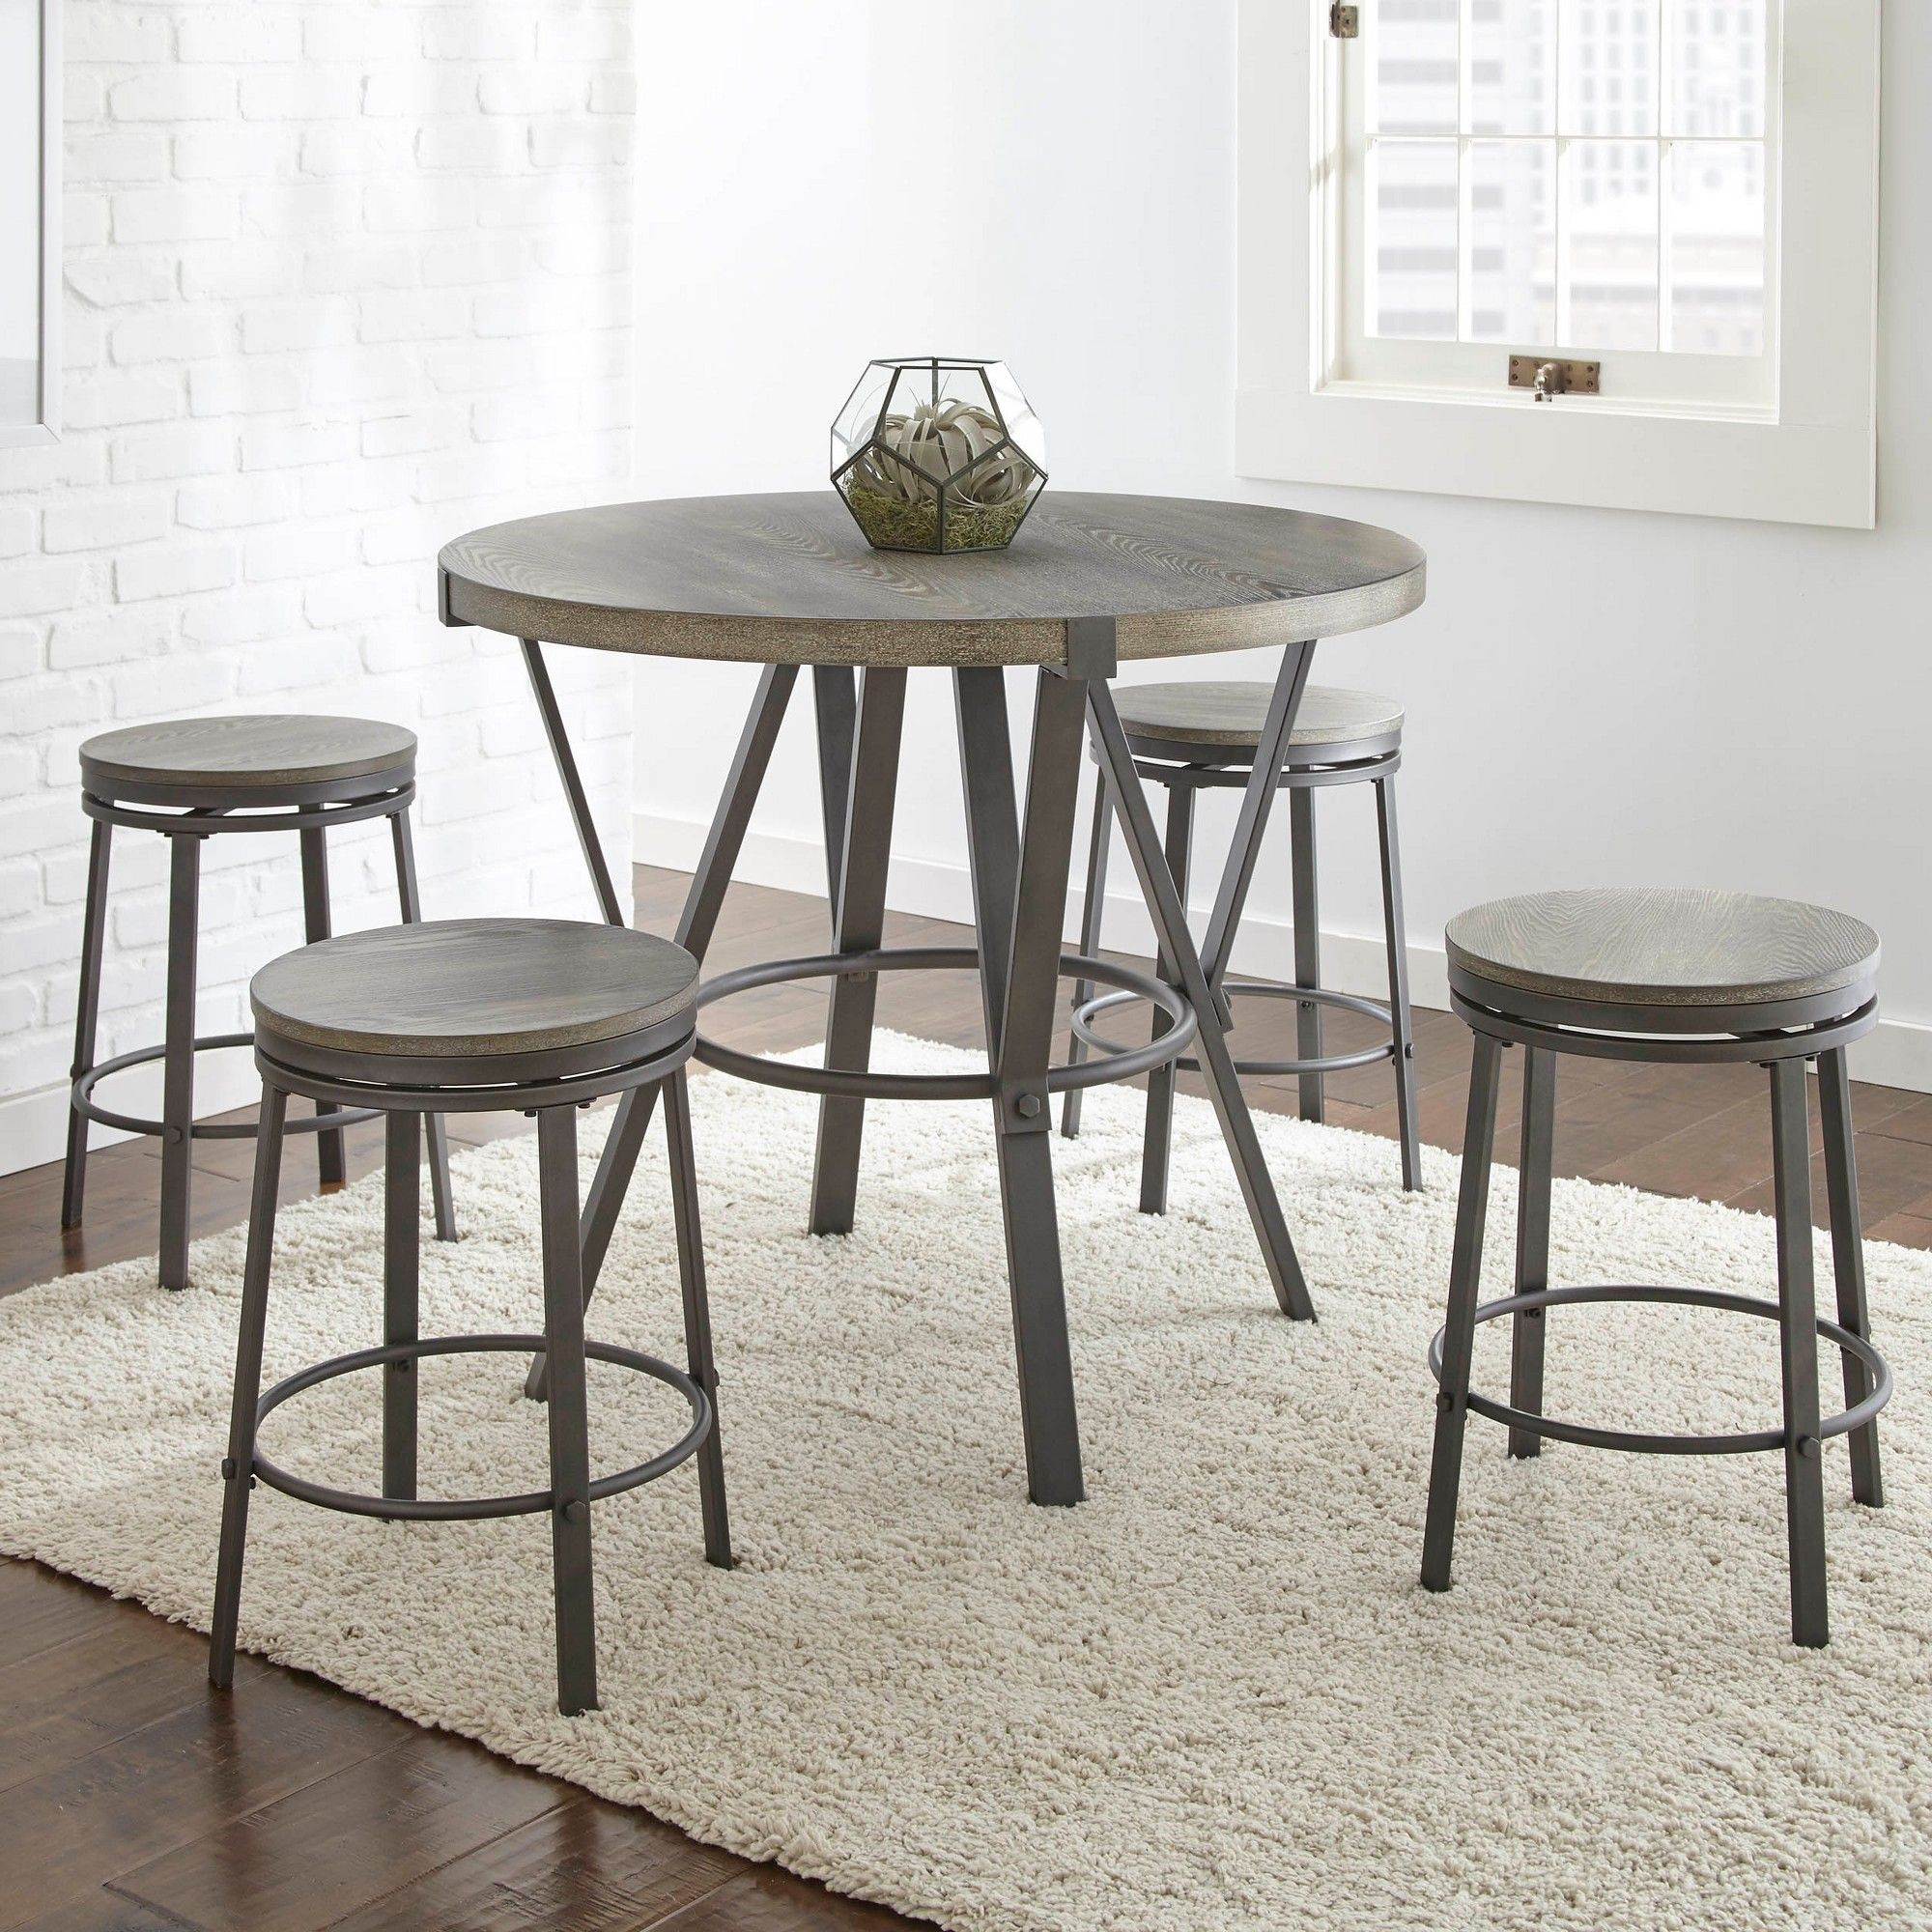 Portland Round Counter Table Gray – Steve Silver In 2019 Pertaining To Most Recent Griffin Reclaimed Wood Bar Height Tables (View 10 of 25)